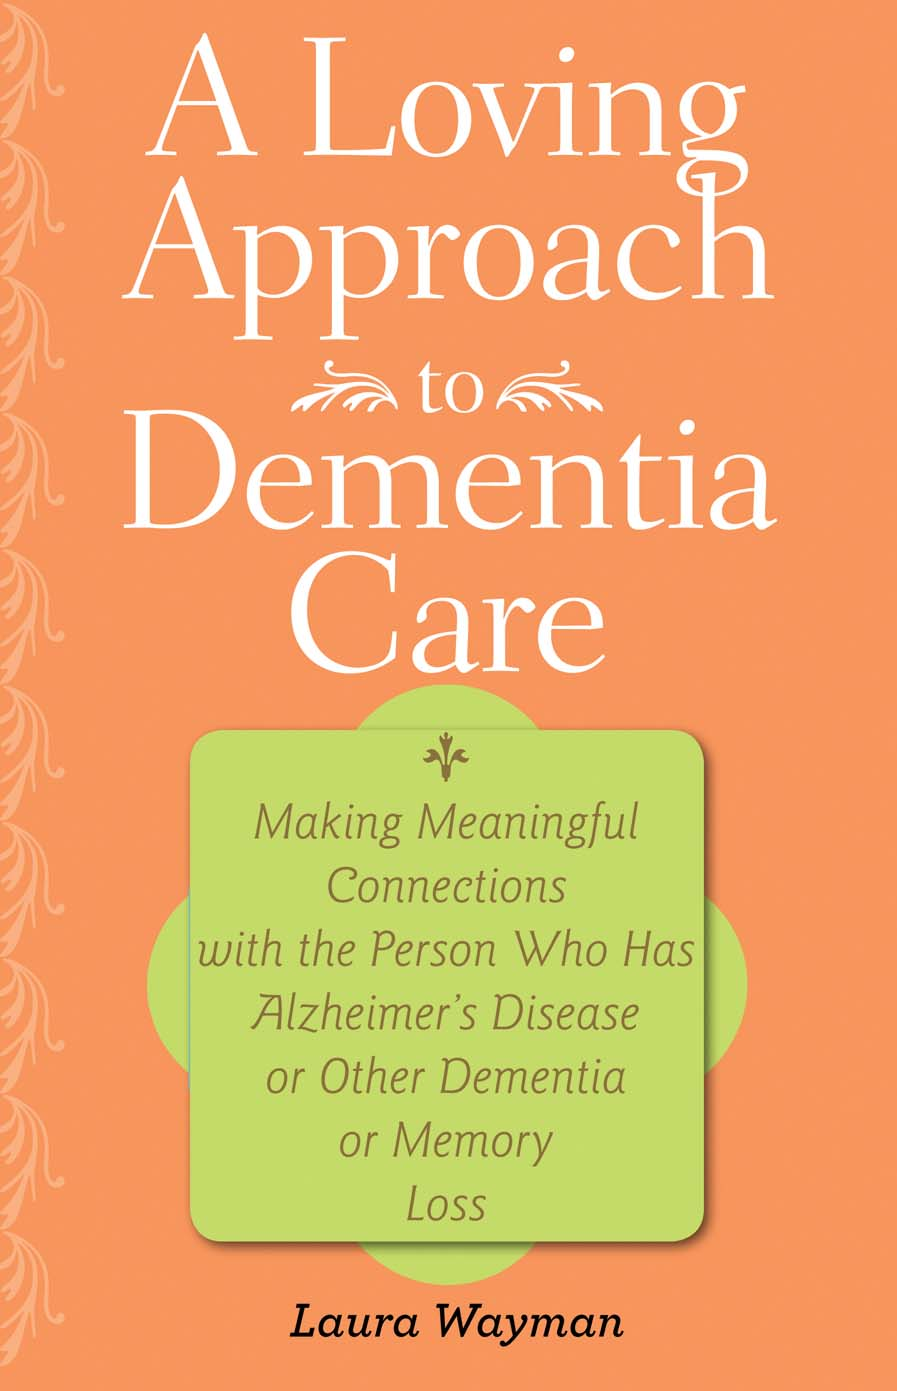 A Loving Approach to Dementia Care – Making Meaningful Connections with the Person Who Has Alzheimer?s Disease or Other Dementia or Memory teaching dementia care – skill and understanding